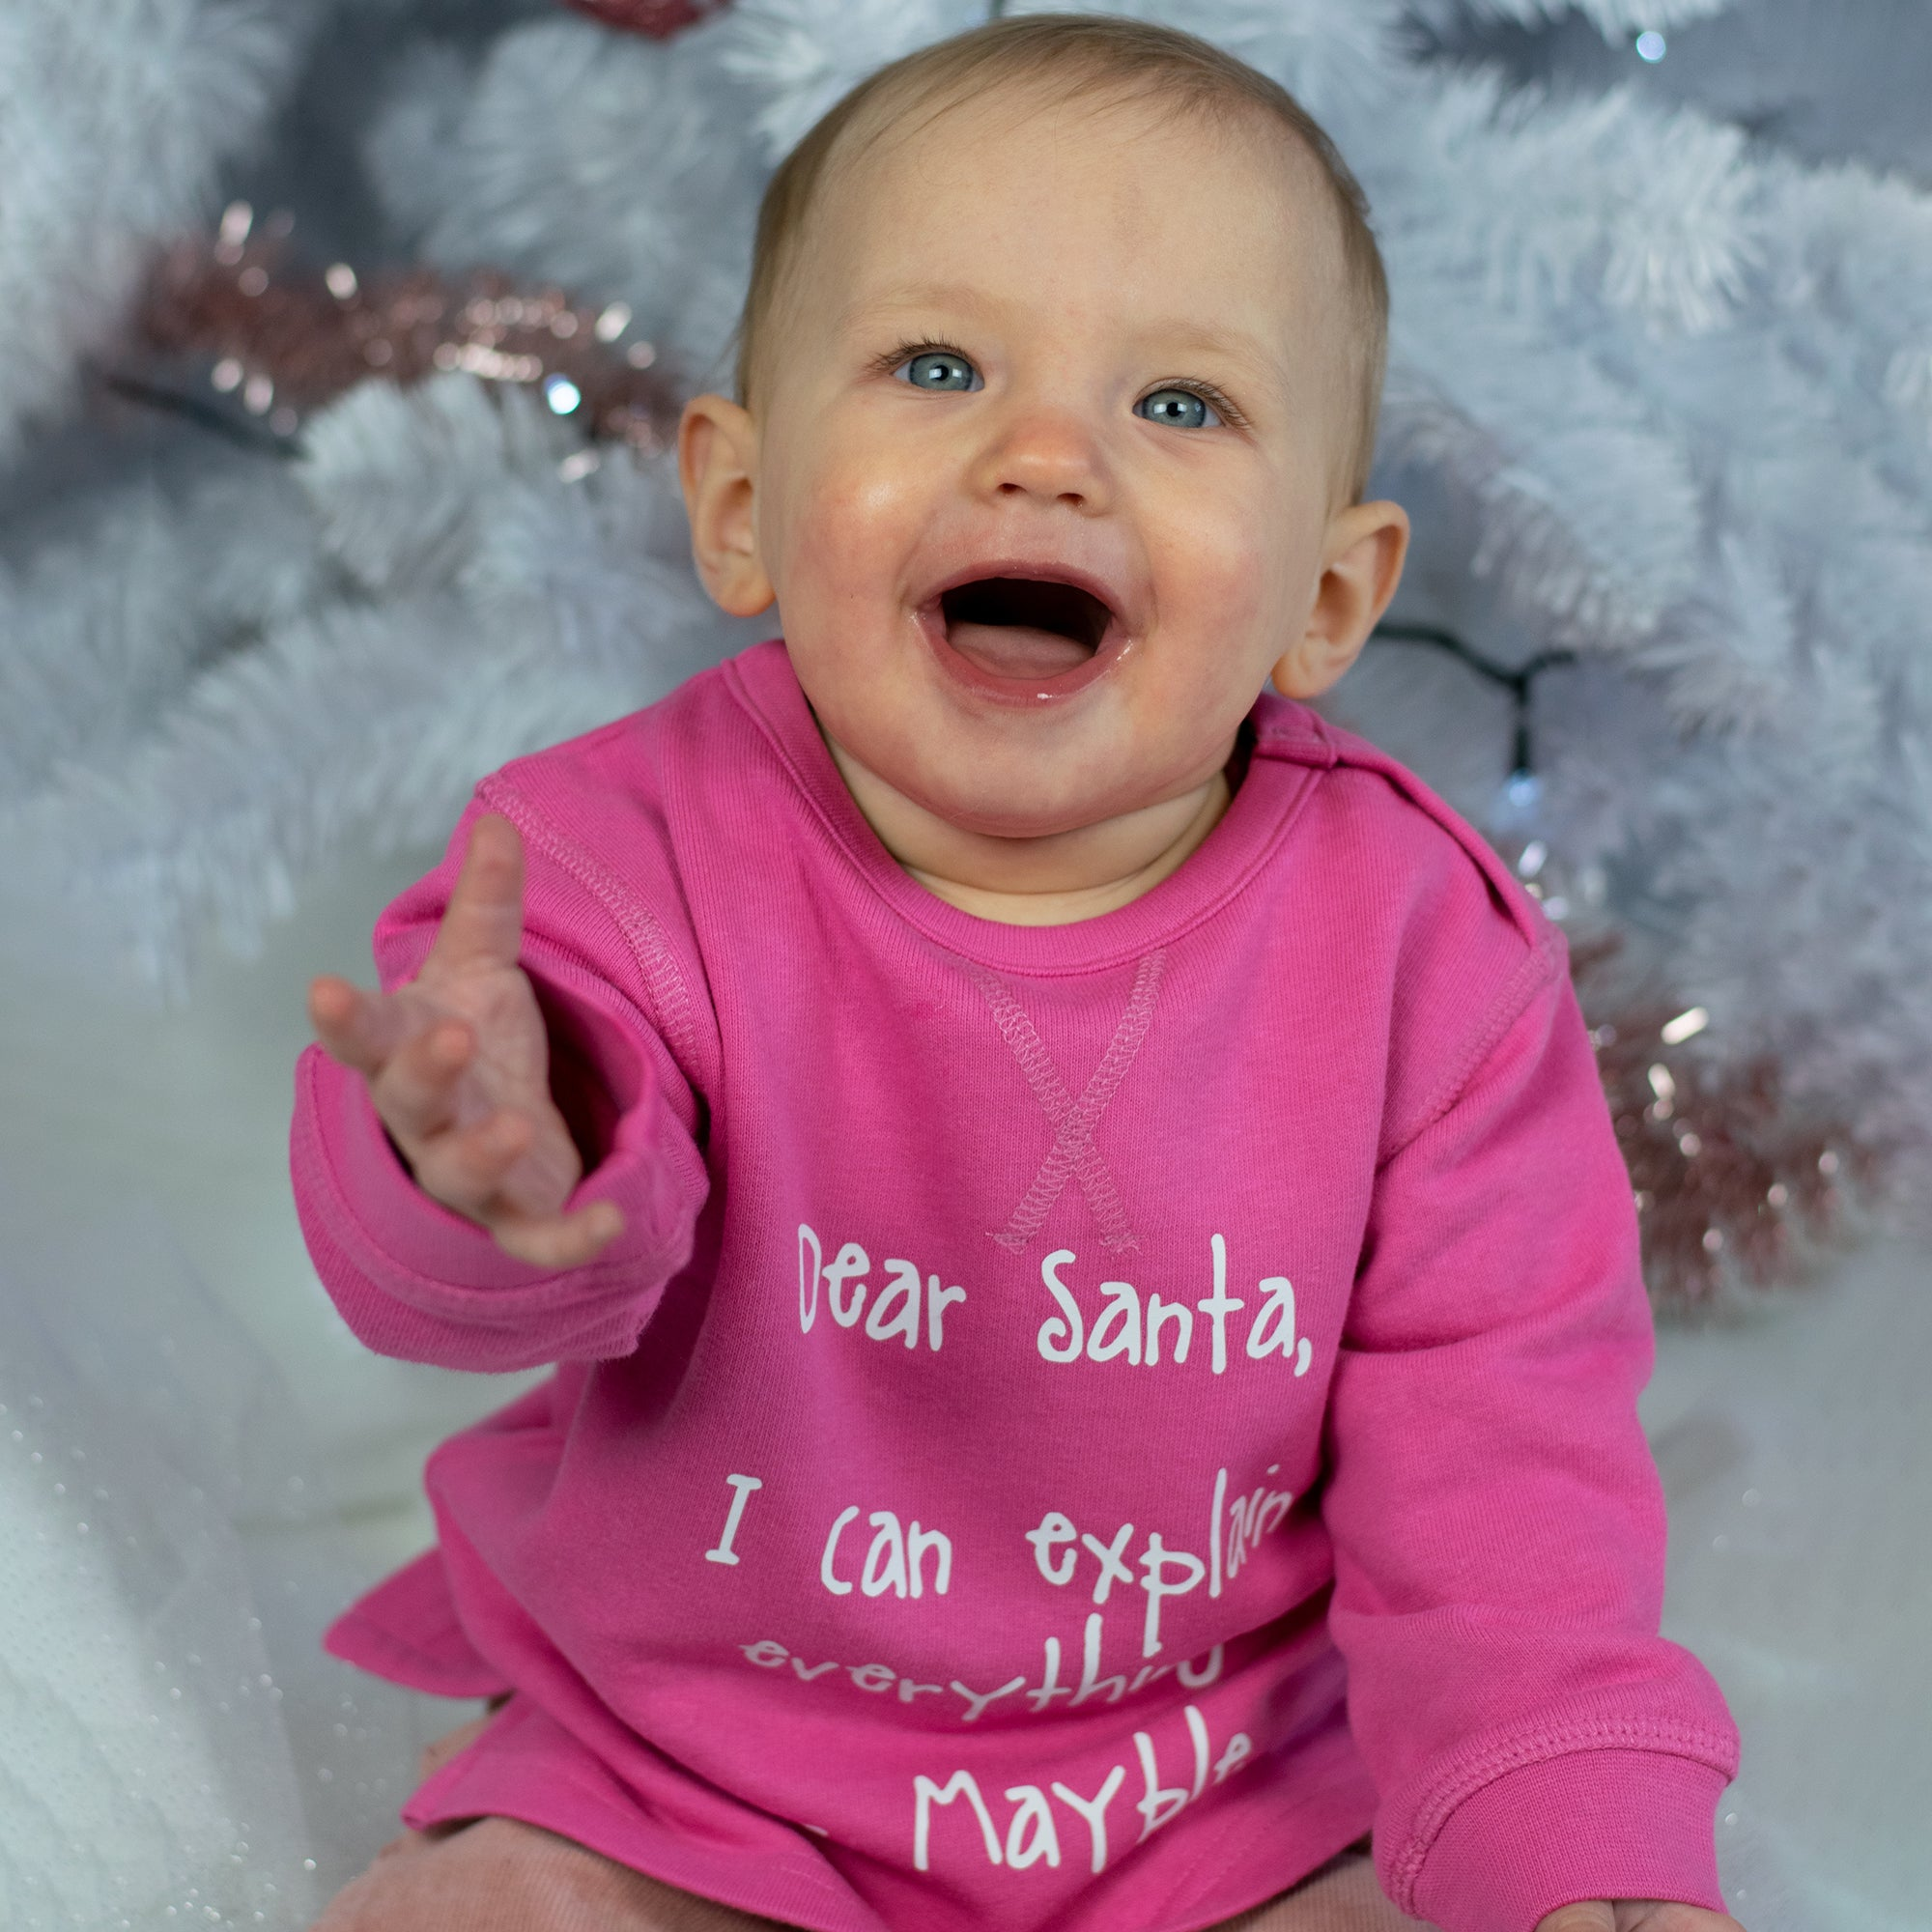 Baby girl with blue eyes and pink sweater with 'Santa, I can explain everything' sweater by KMLeon.